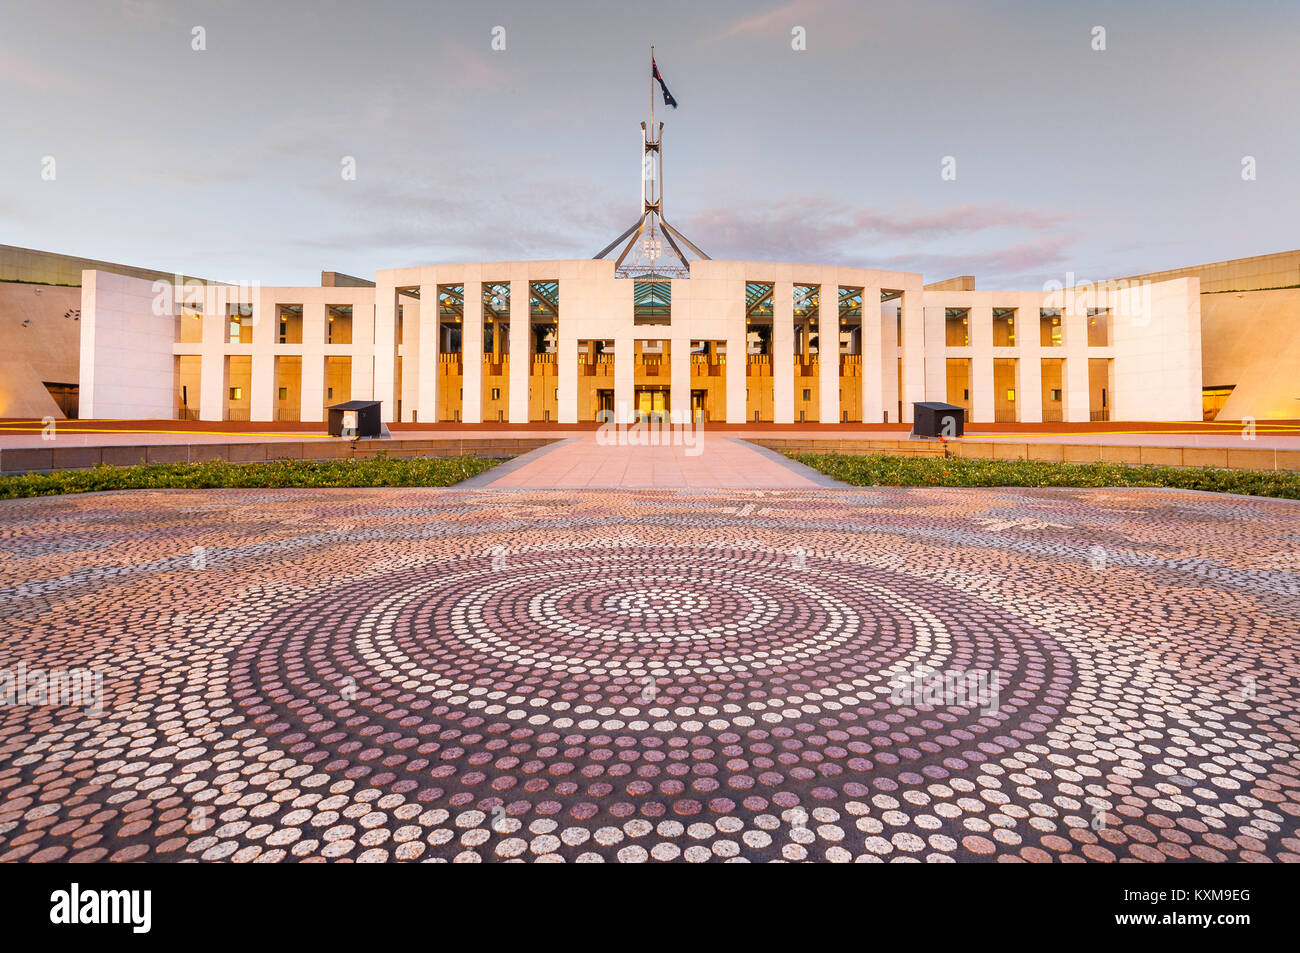 House of Parliament in Canberra. - Stock Image